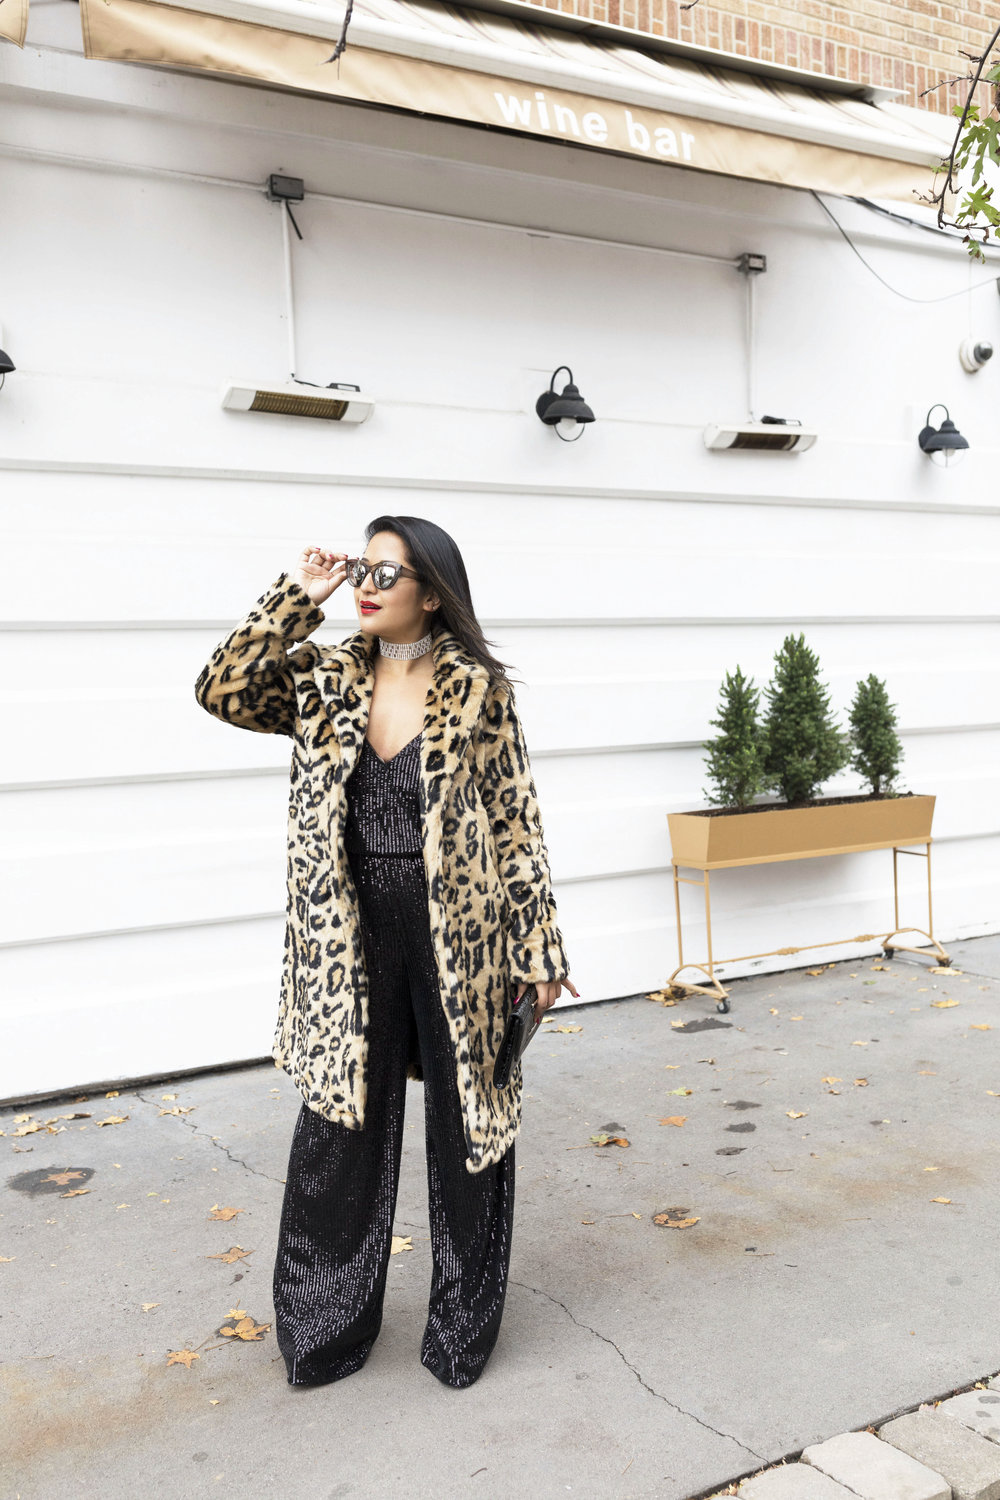 Krity S x New Years Eve Outfit x Sequin Jumpsuit and Cheetah Faux Fur2.jpg